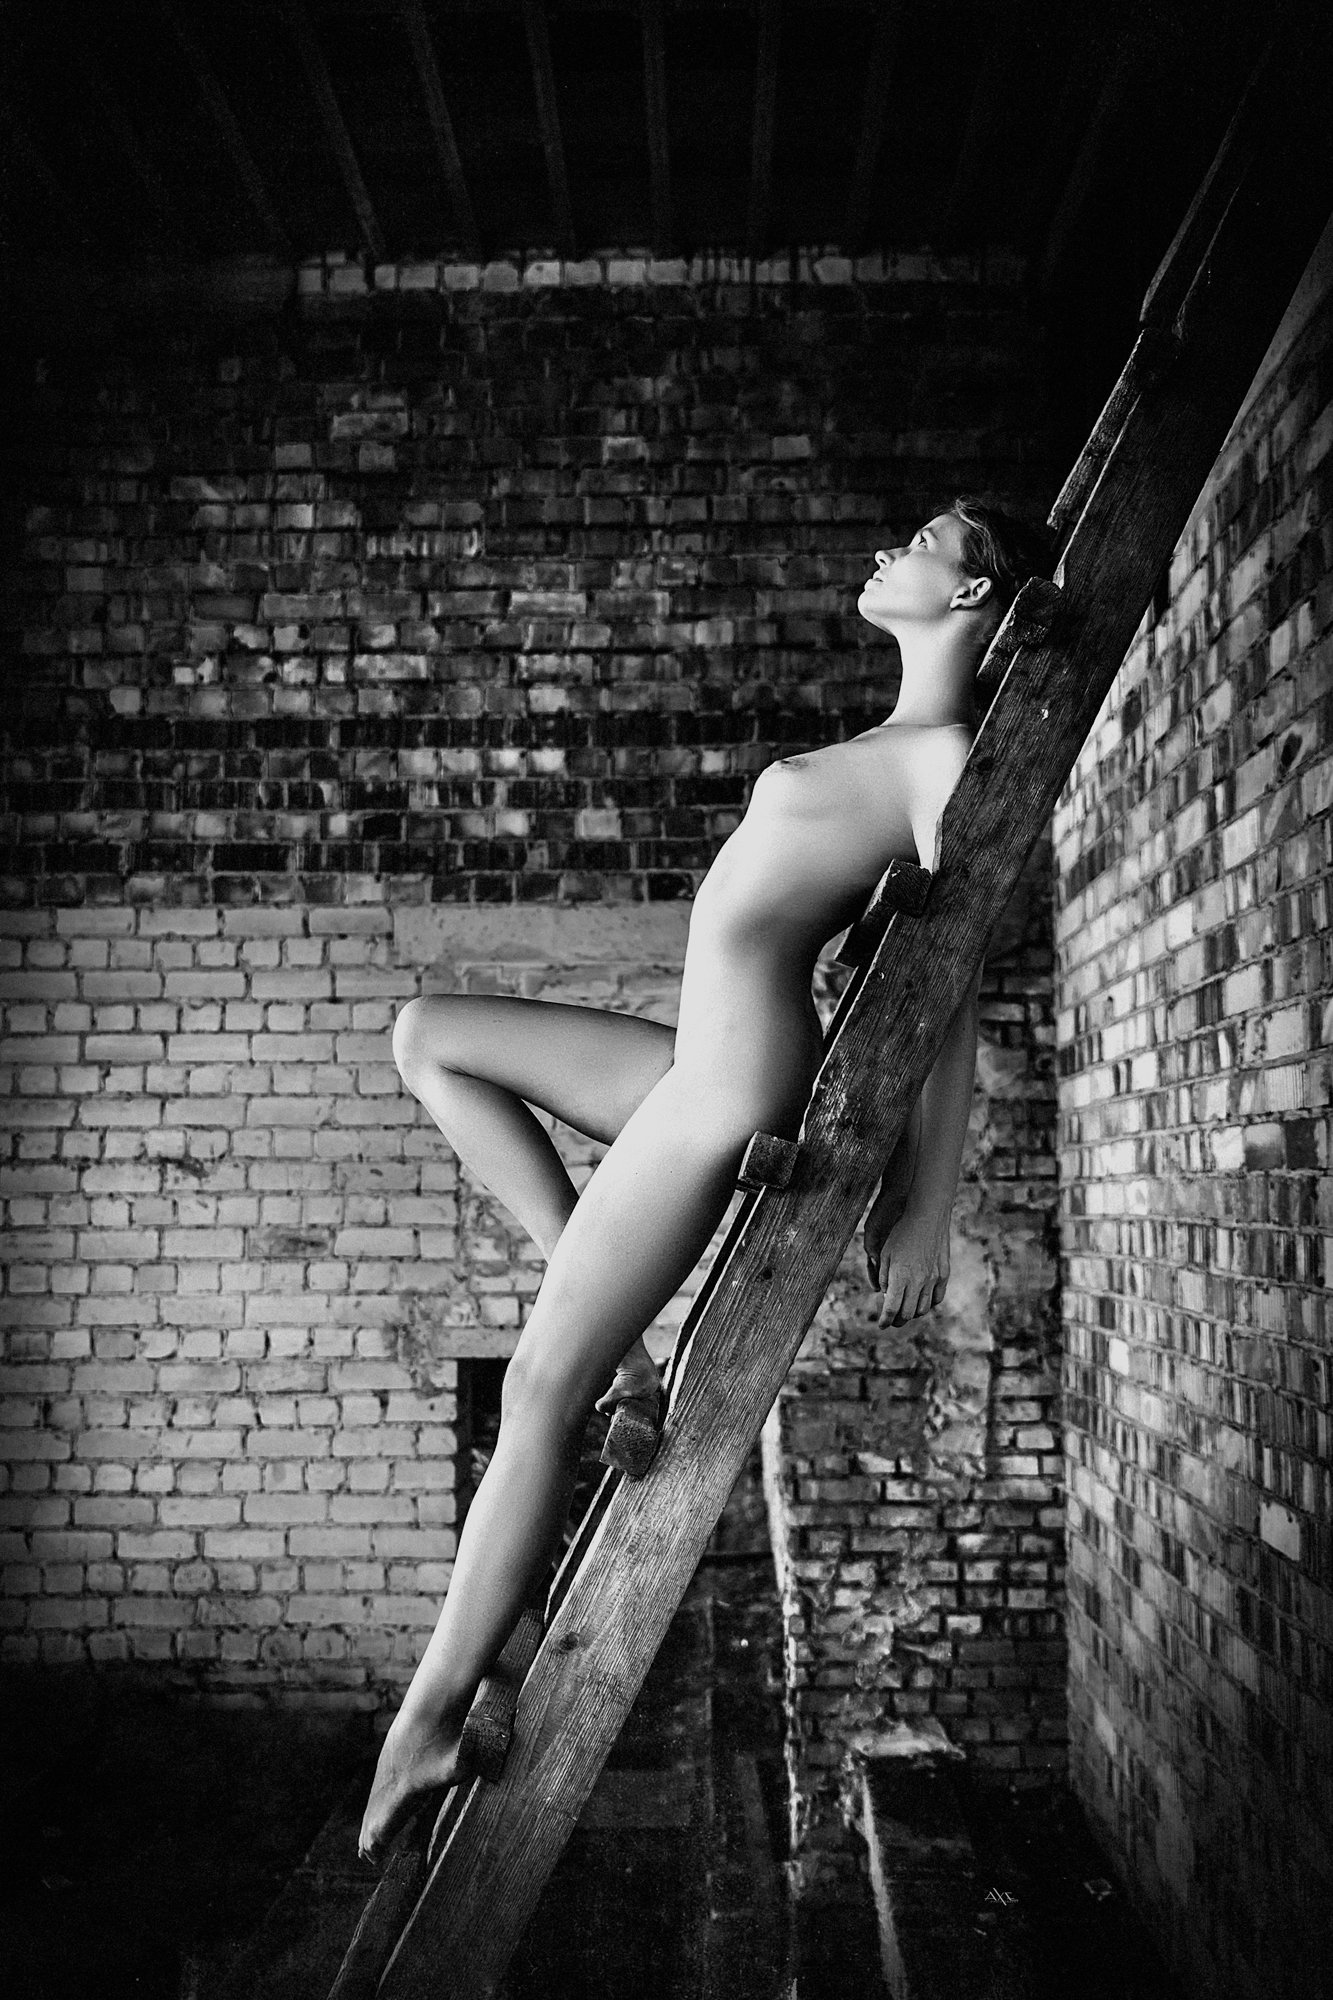 woman, nude, art, natural light, stairs, abandoned, black and white, Руслан Болгов (Axe)